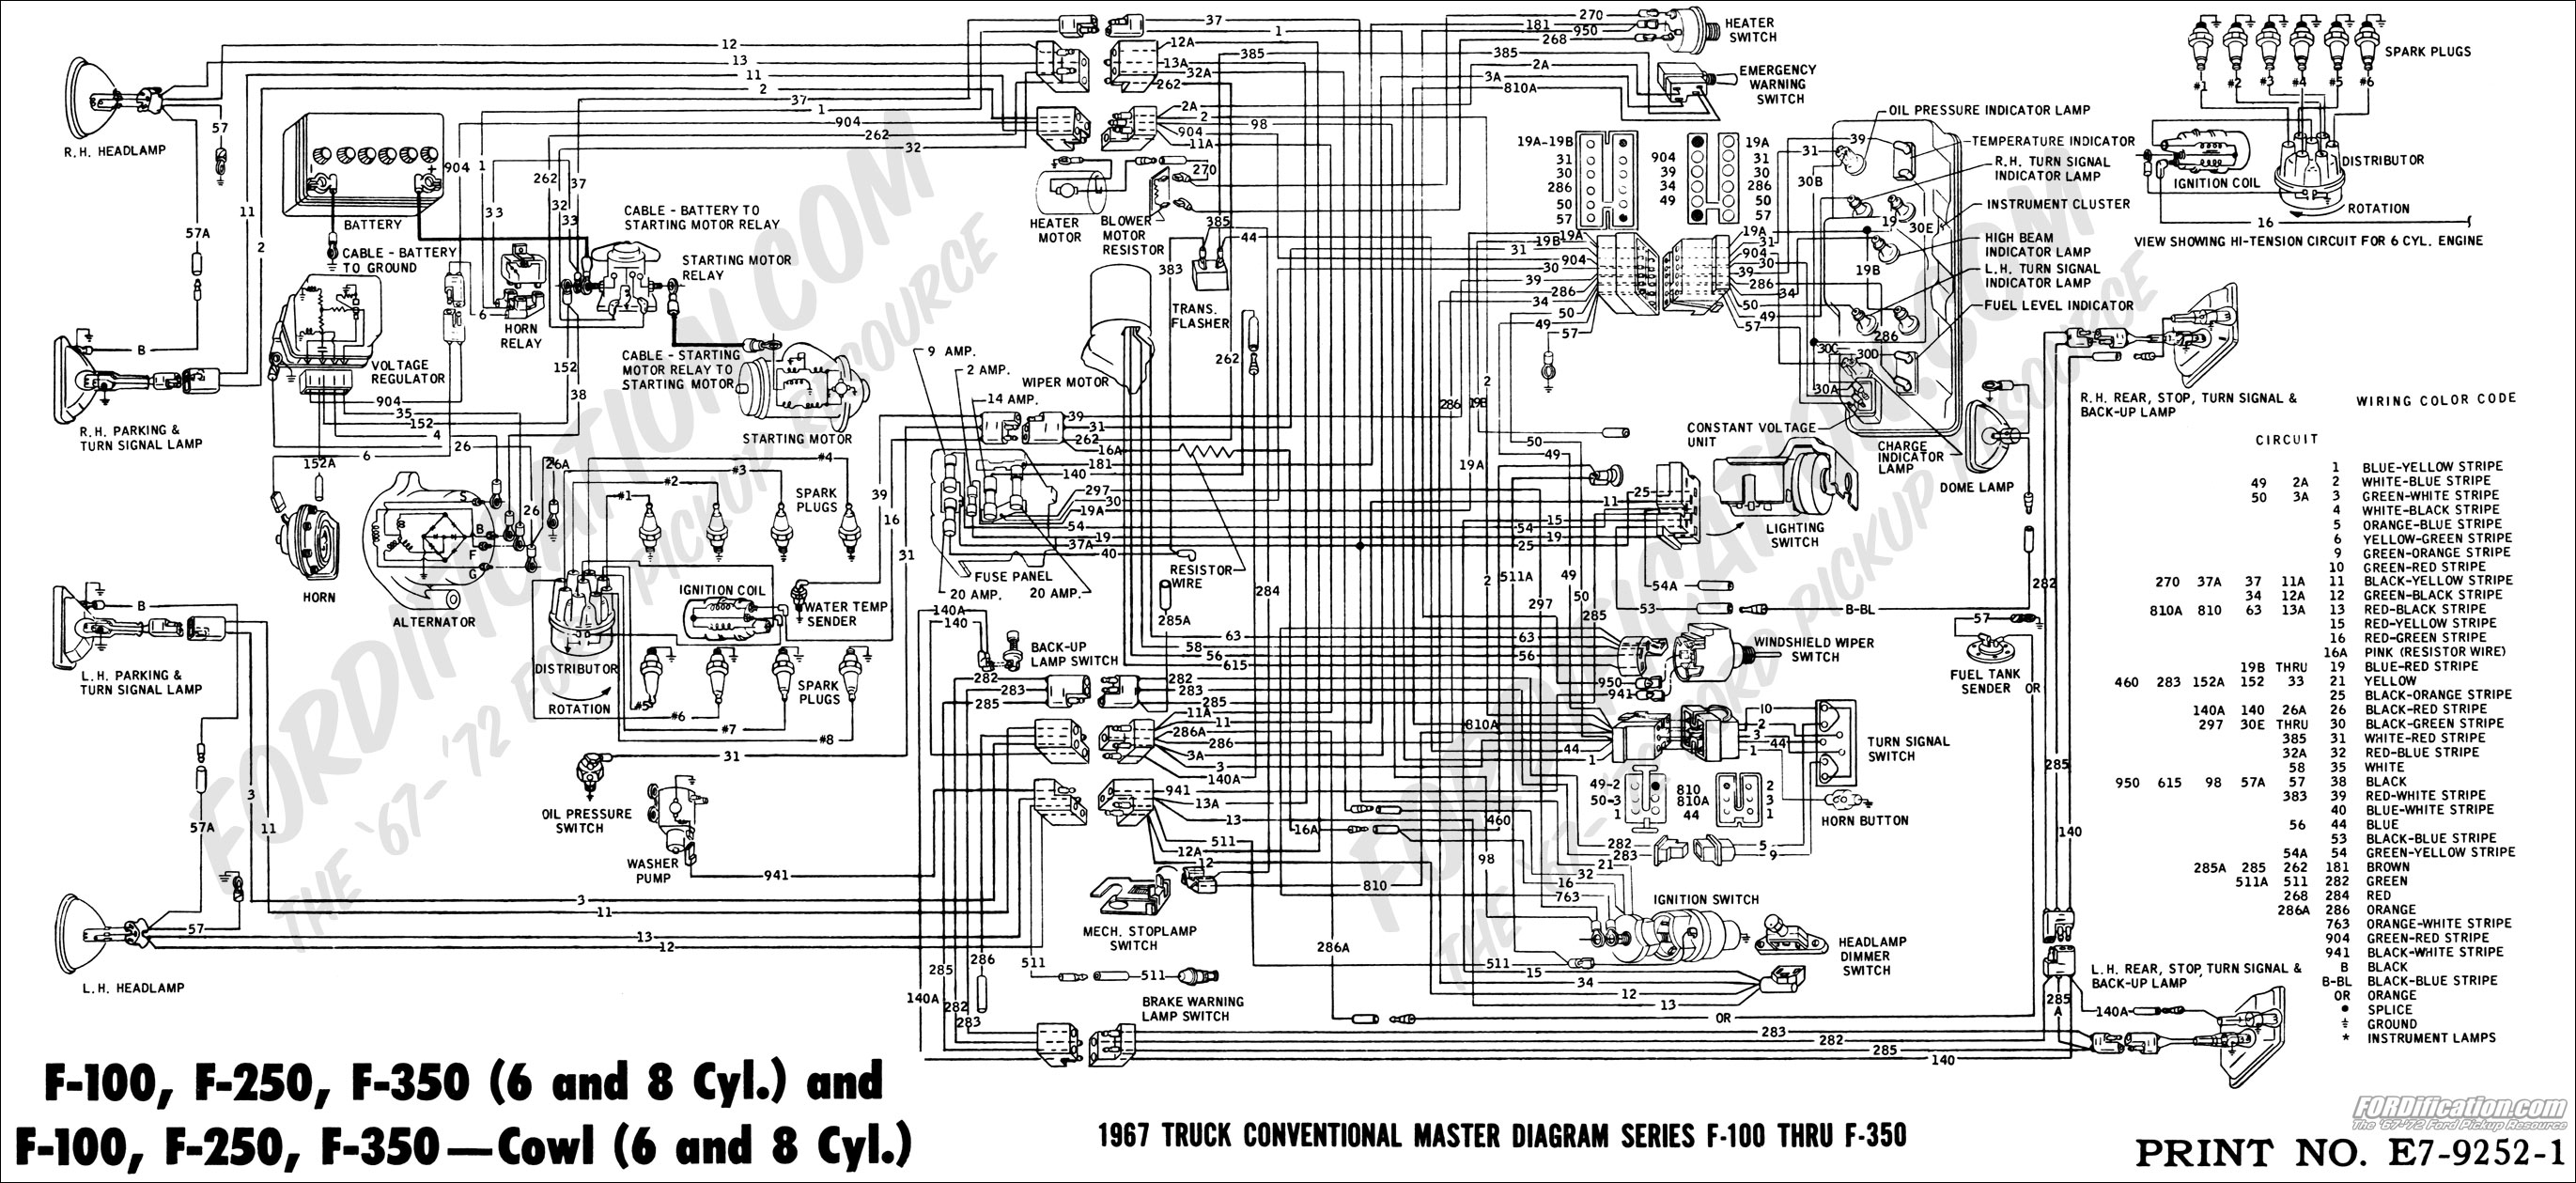 67masterdiagram 1983 ford f150 wiring diagram f150 alternator wiring diagram 1992 ford f150 radio wiring diagram at gsmx.co